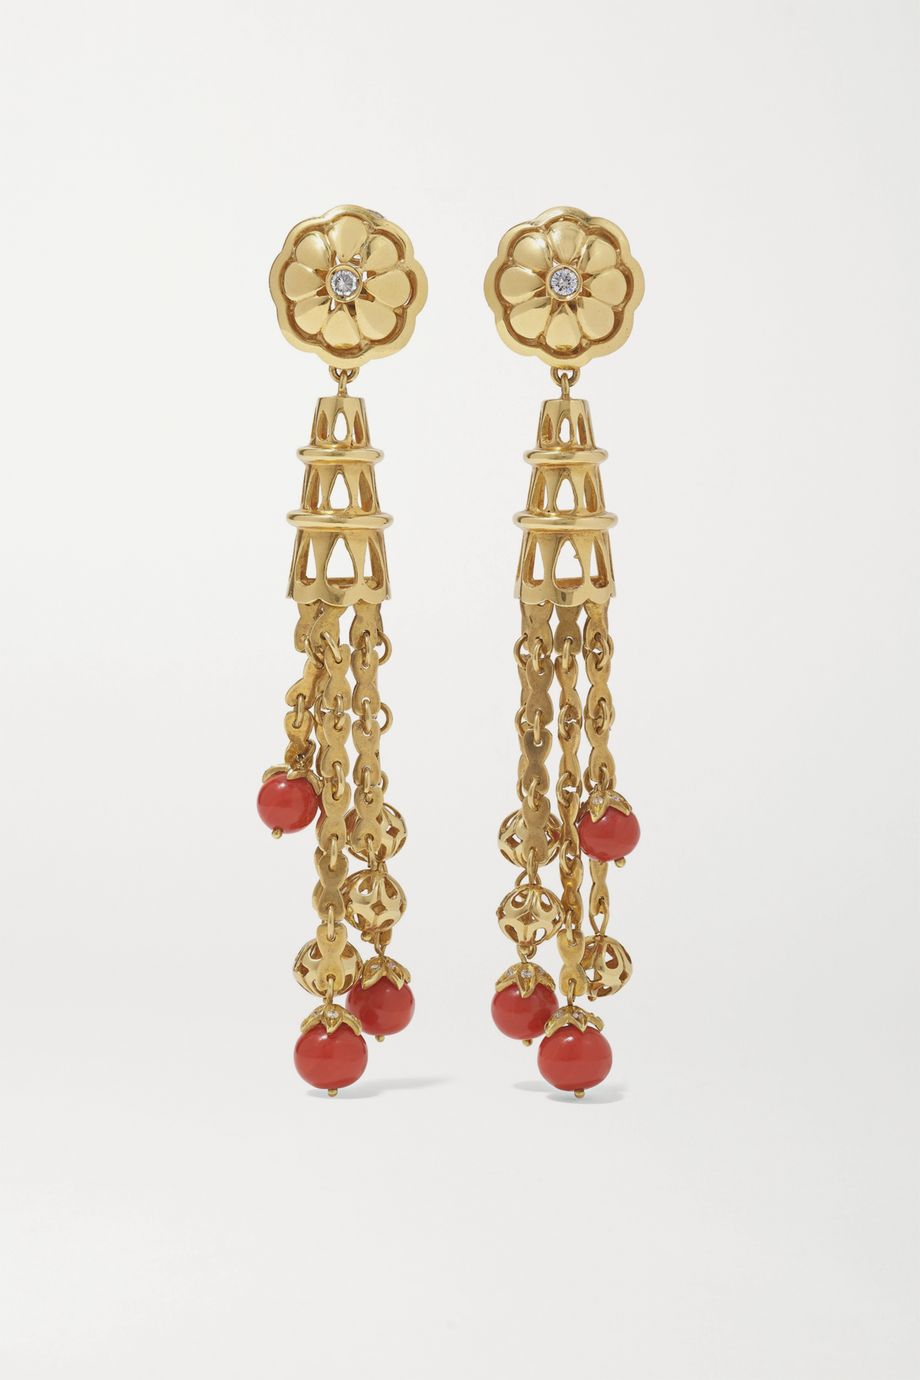 Fred Leighton Mid-20th Century 18-karat gold, coral and diamond earrings